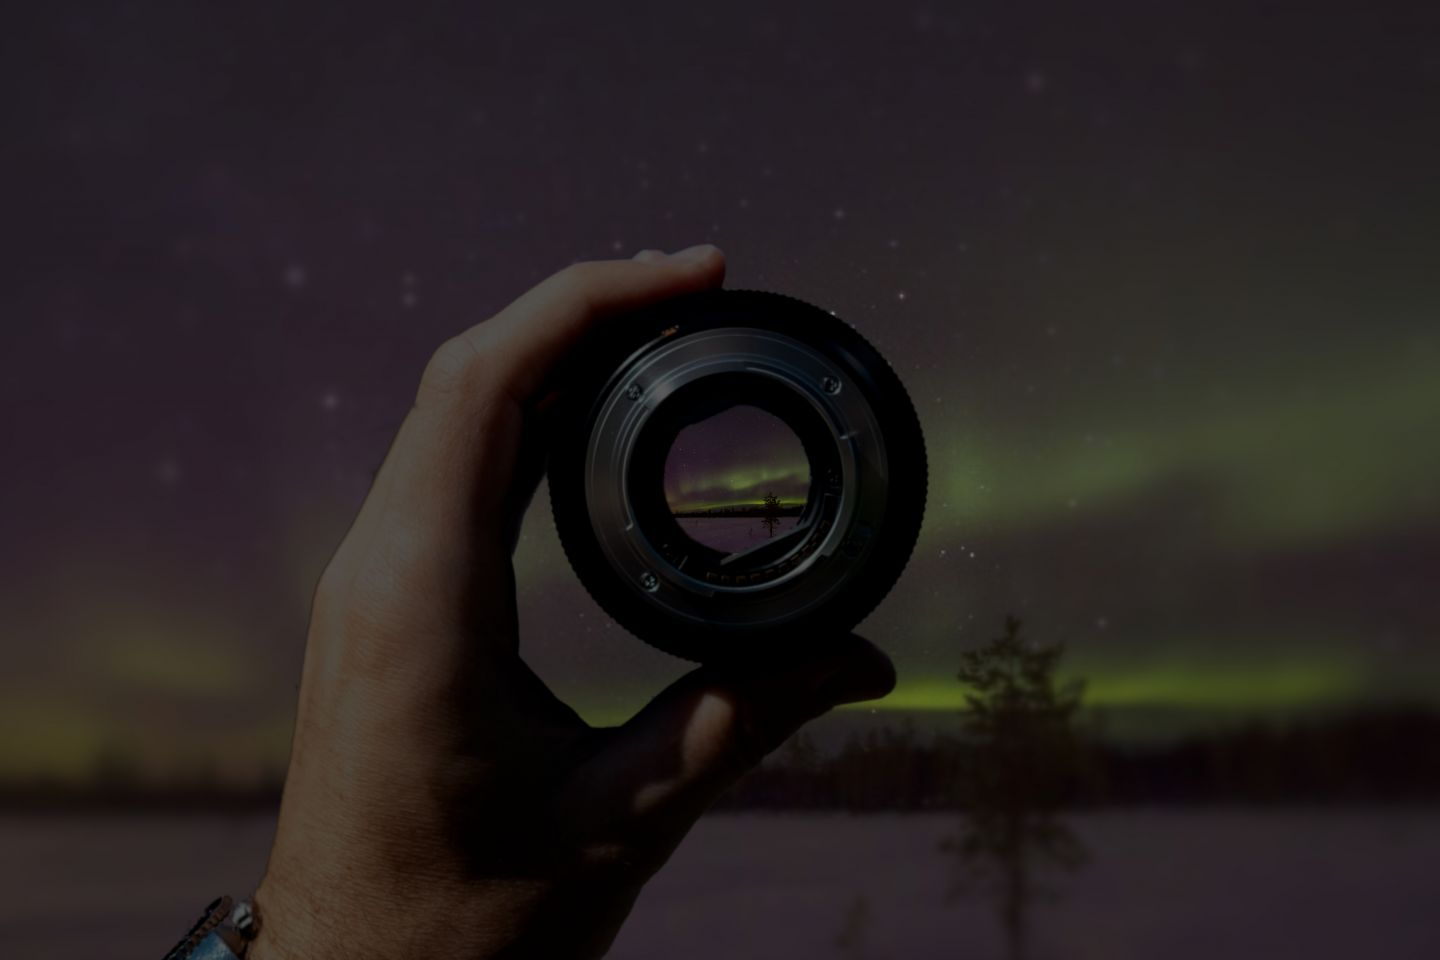 Close-up of northern lights in a camera lens in Finnish Lapland